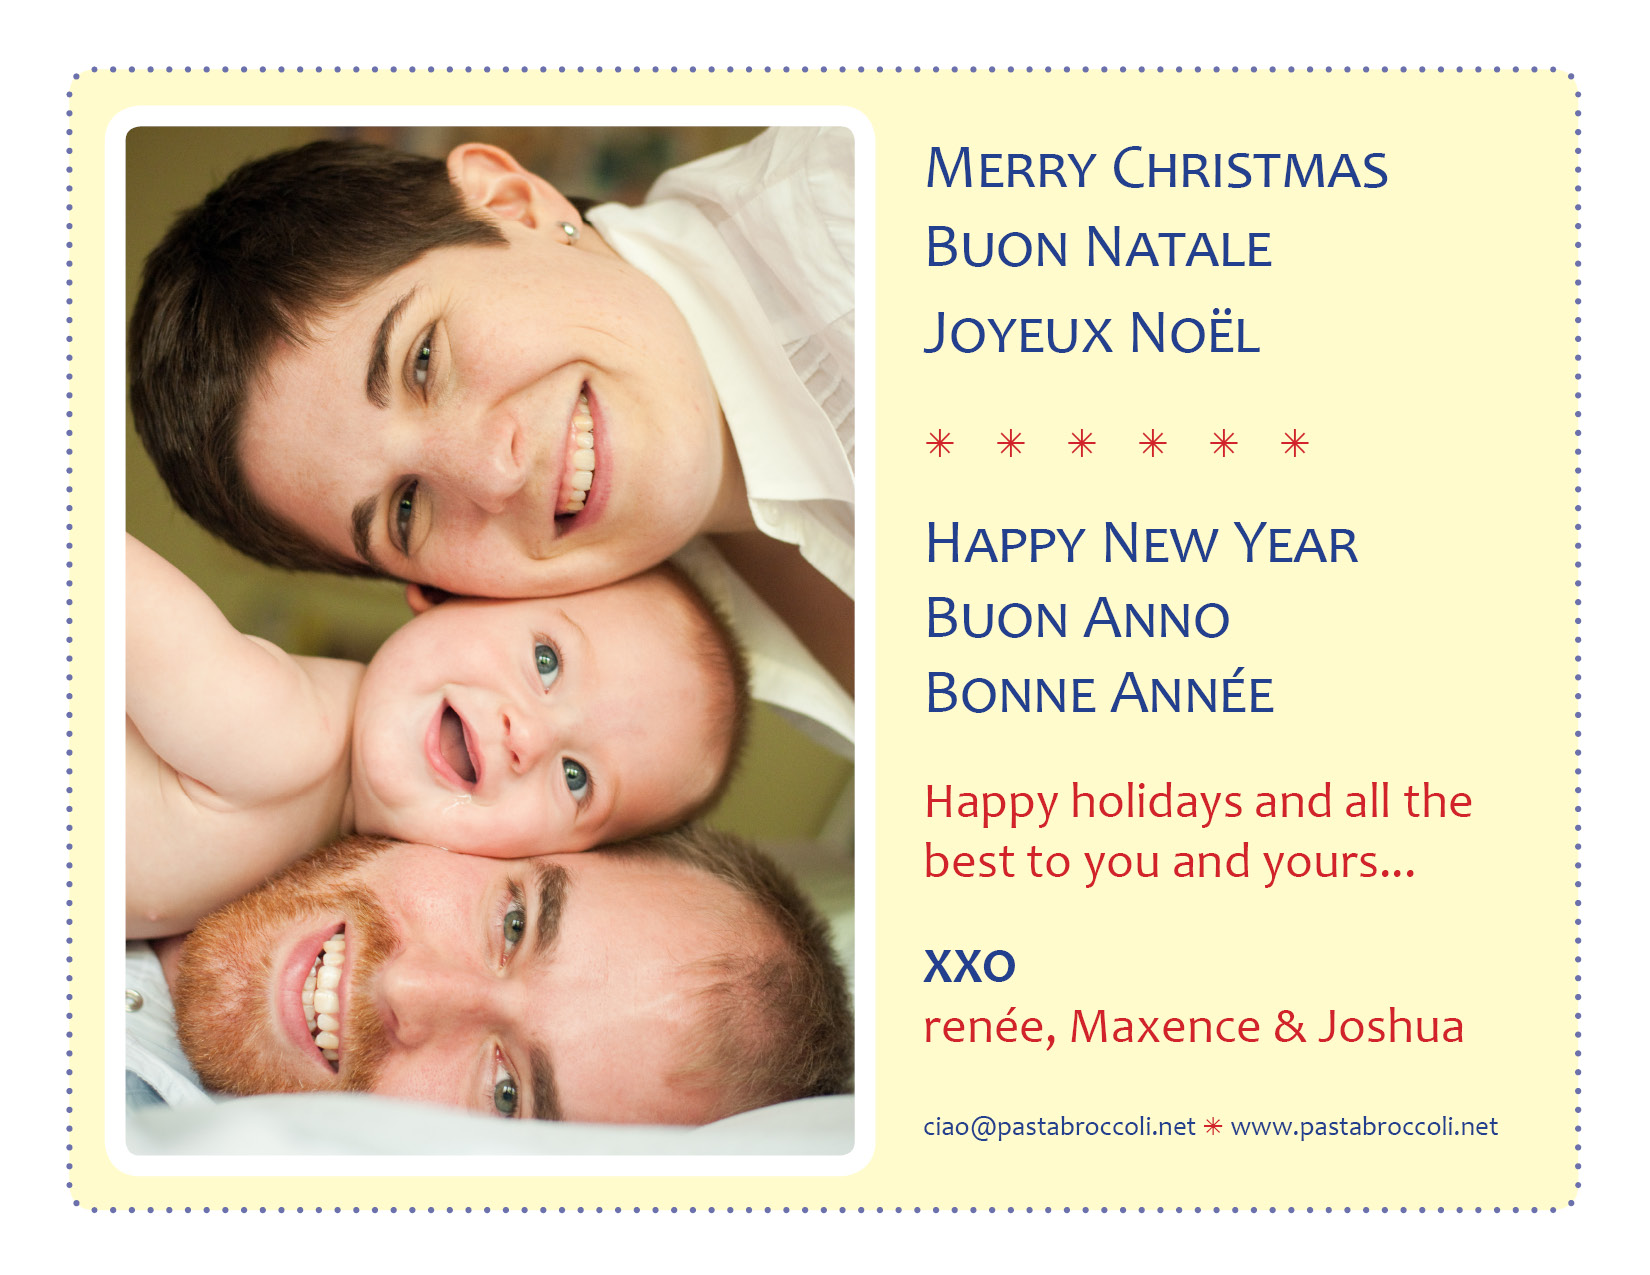 Mercuri_Tusin_holiday_greeting_2009